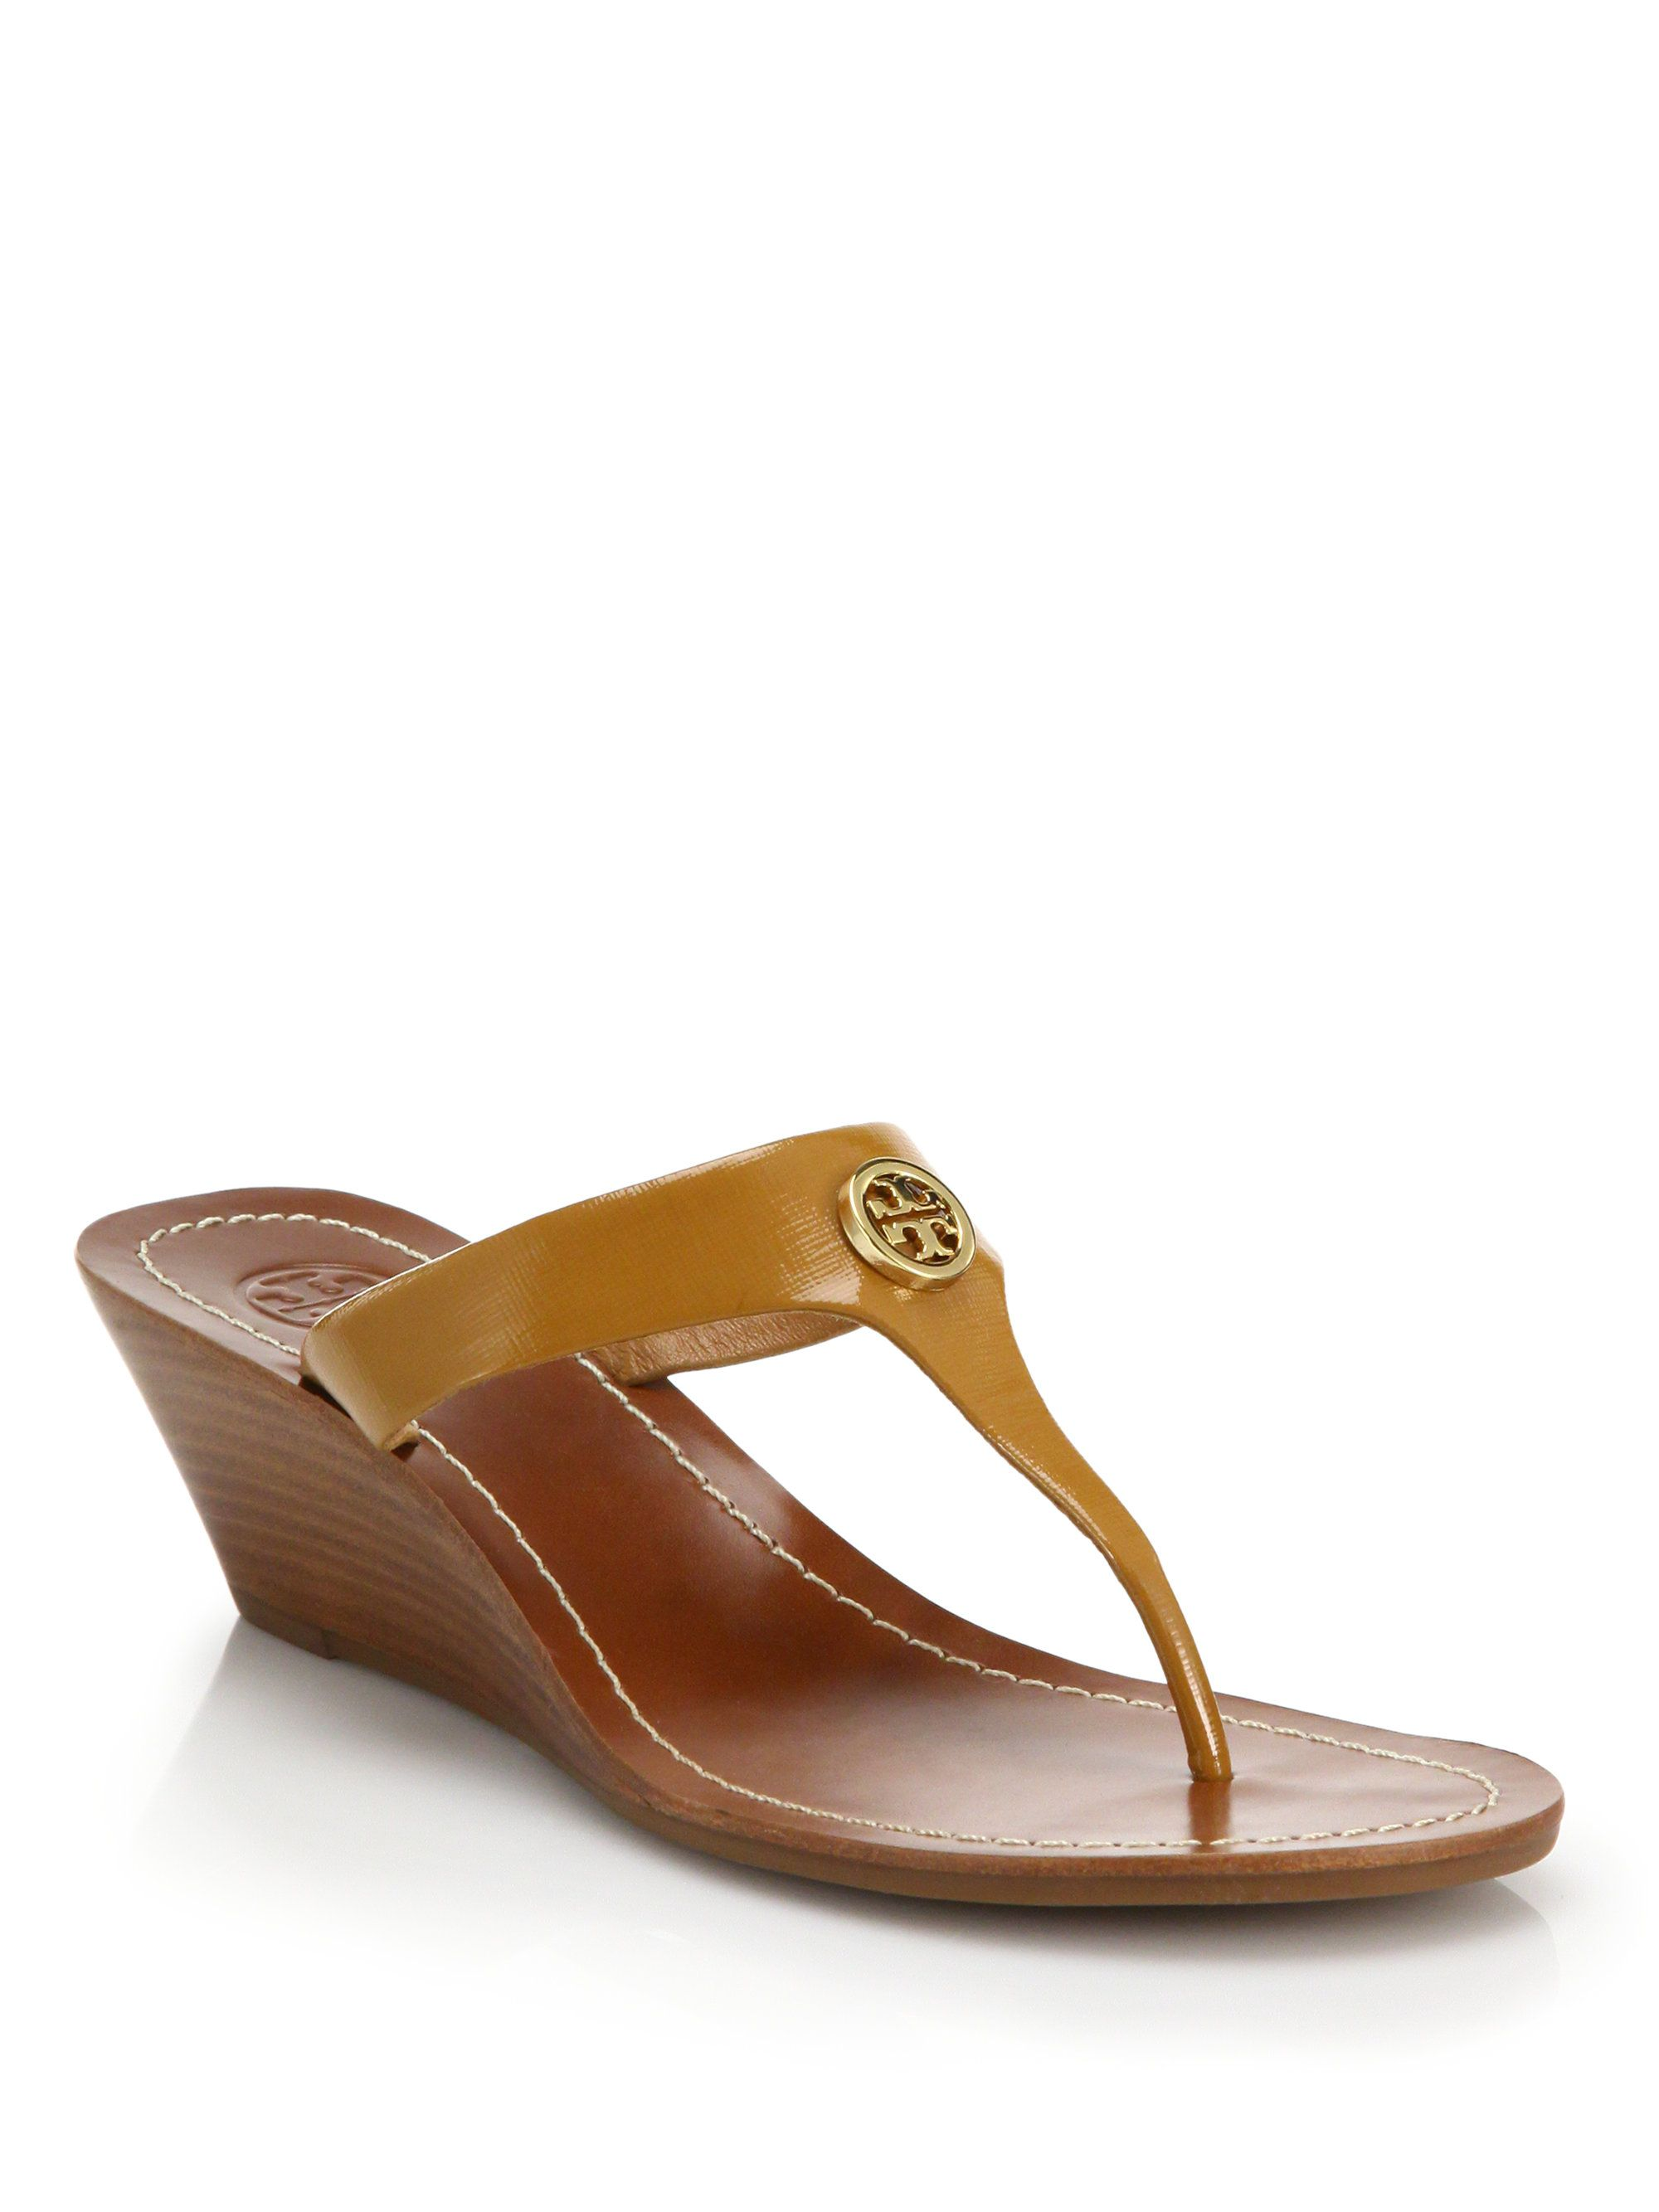 89932d46597 Tory Burch Cameron Logo Leather Thong Wedge Sandals in Brown (tan)